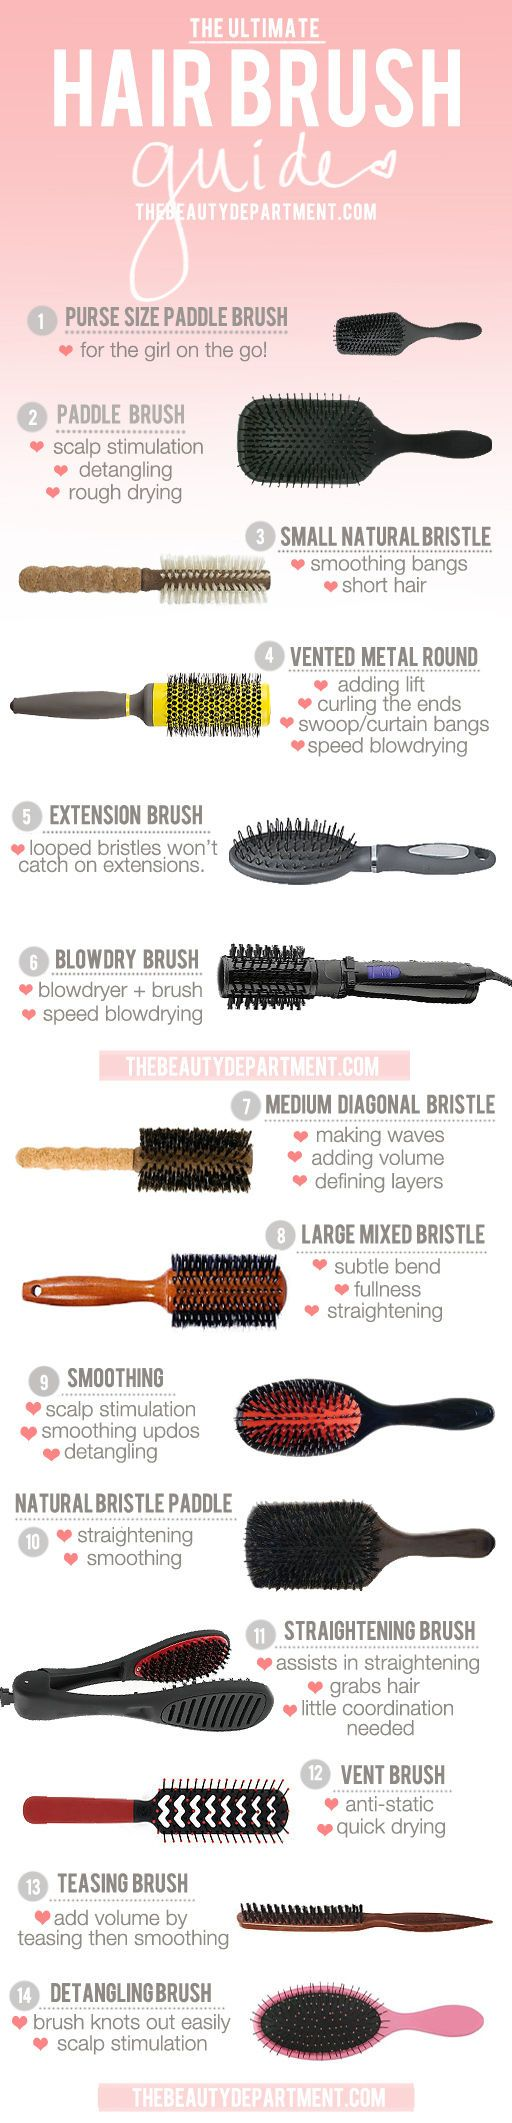 Ultimate hair brush guide.